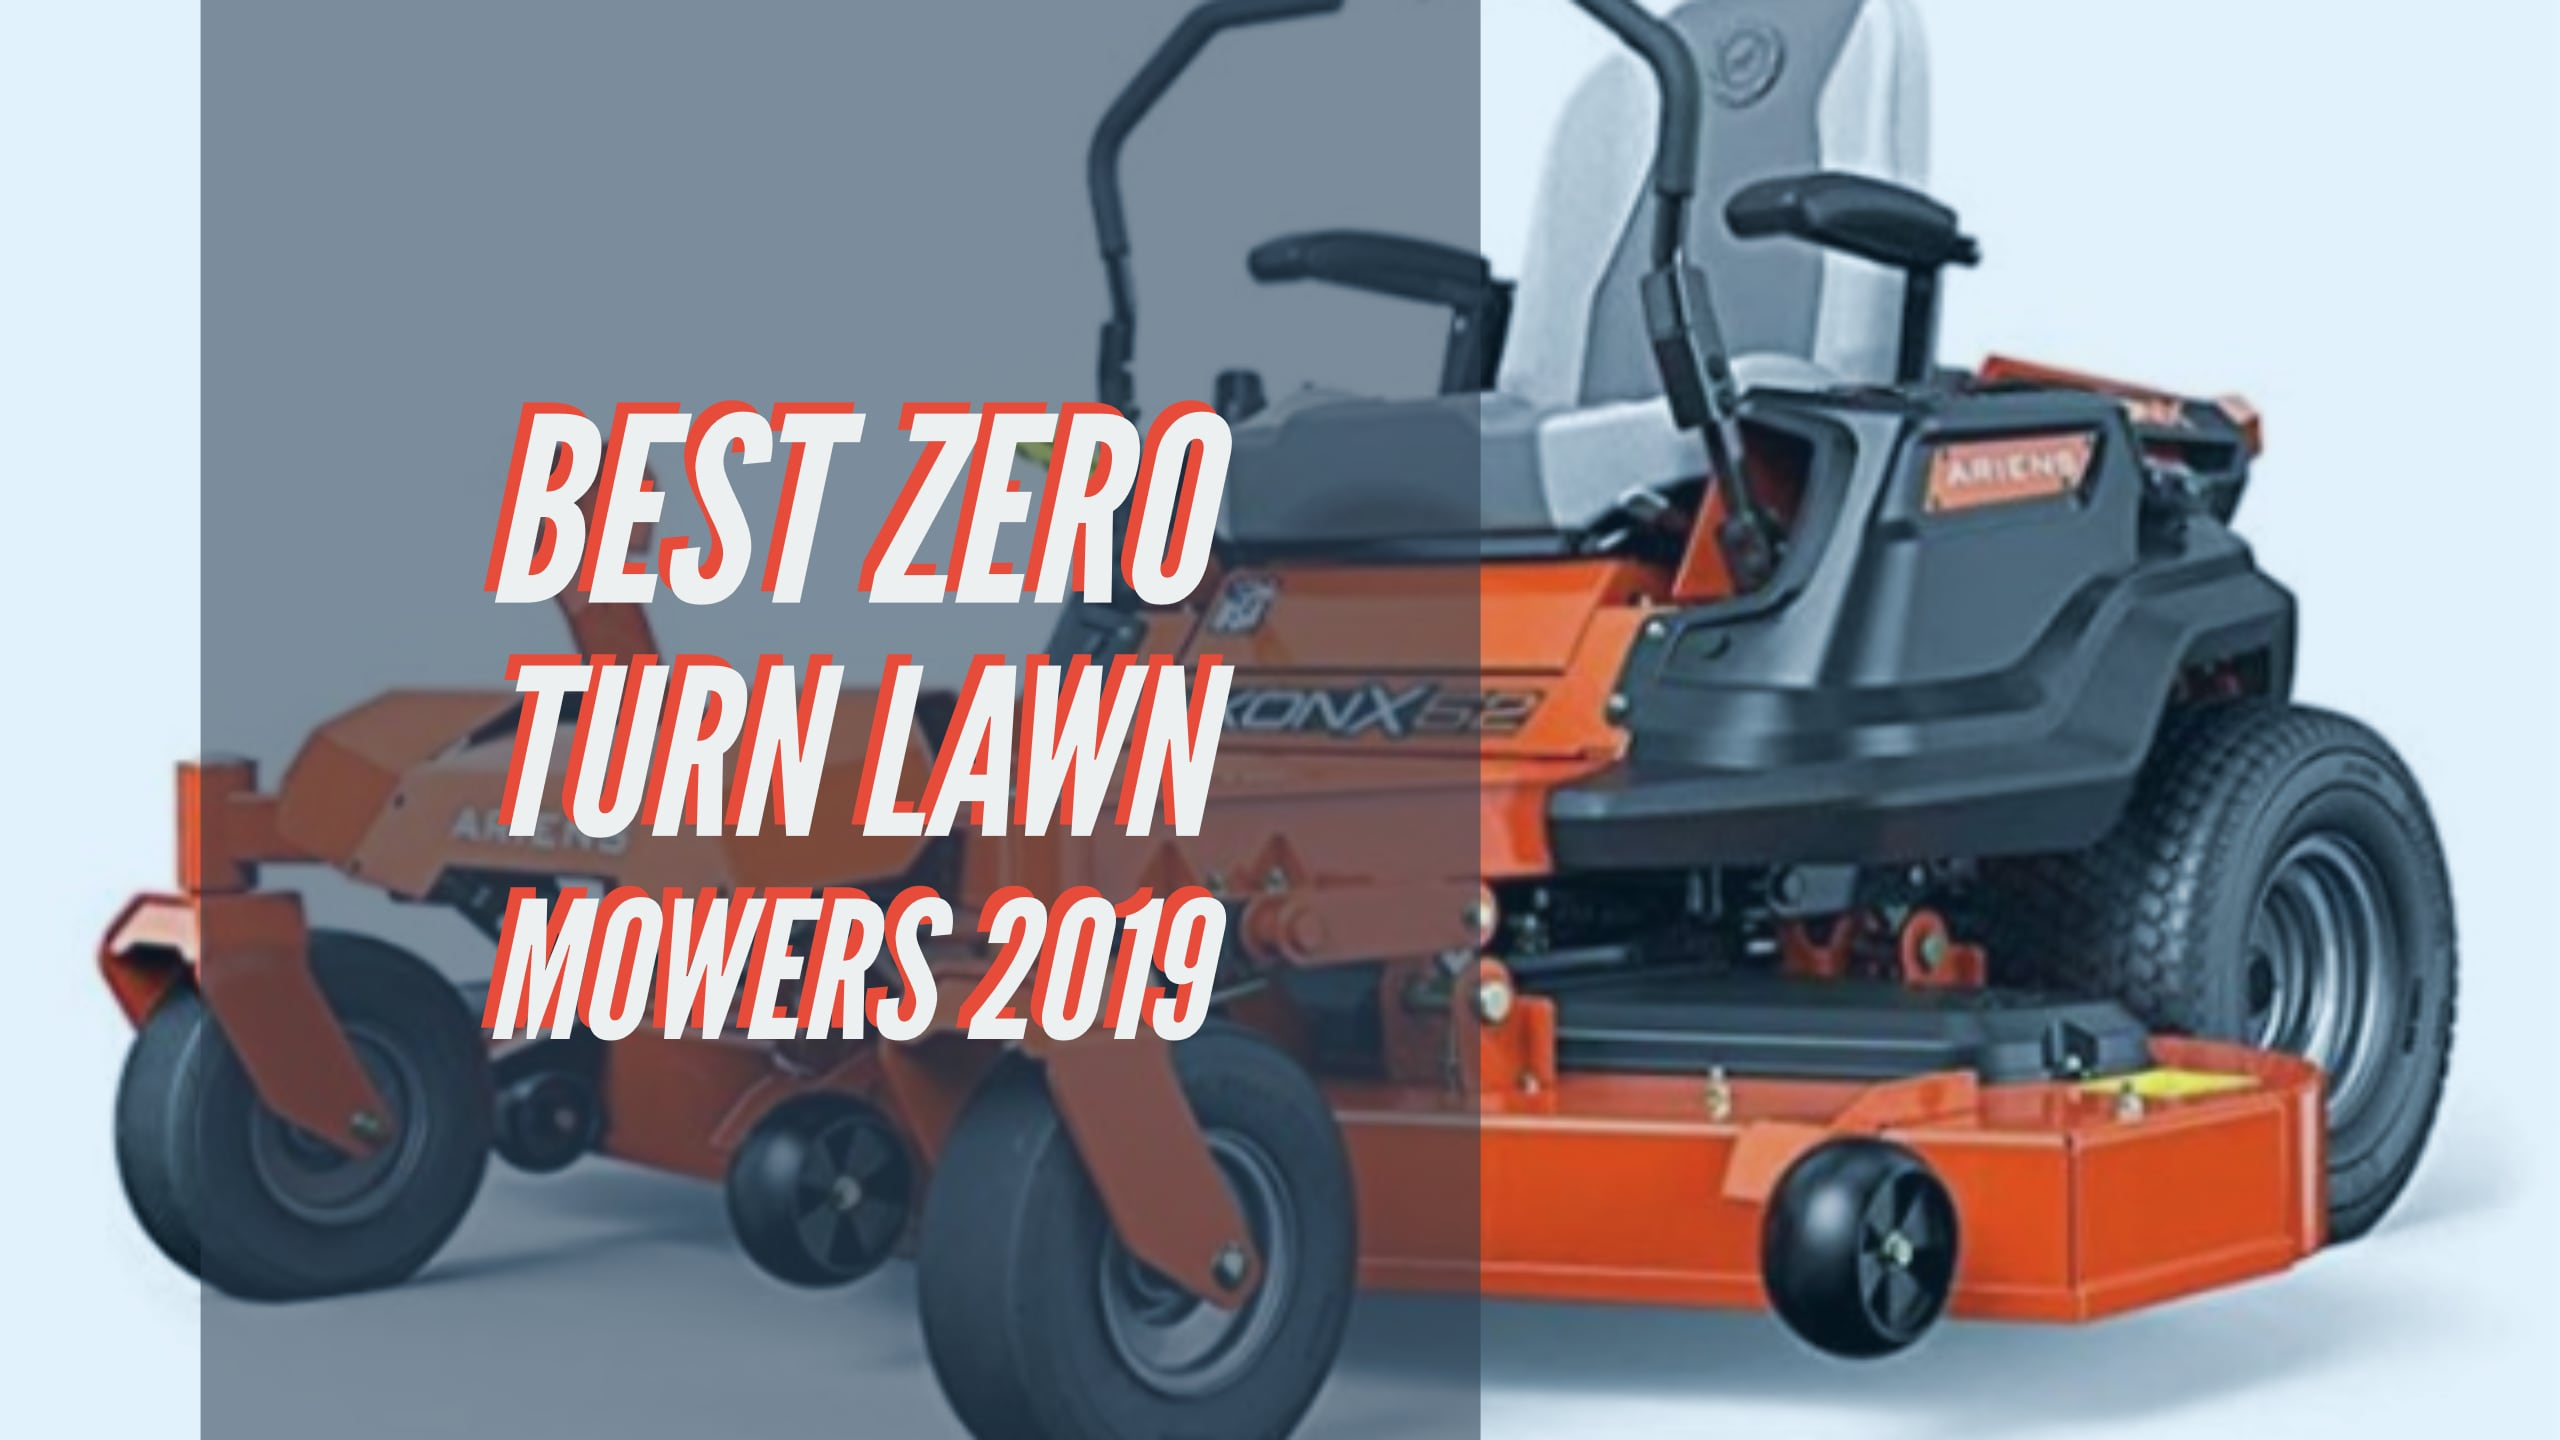 7 Best Zero Turn Lawn Mowers 2019 Reviews Amp Buying Guide